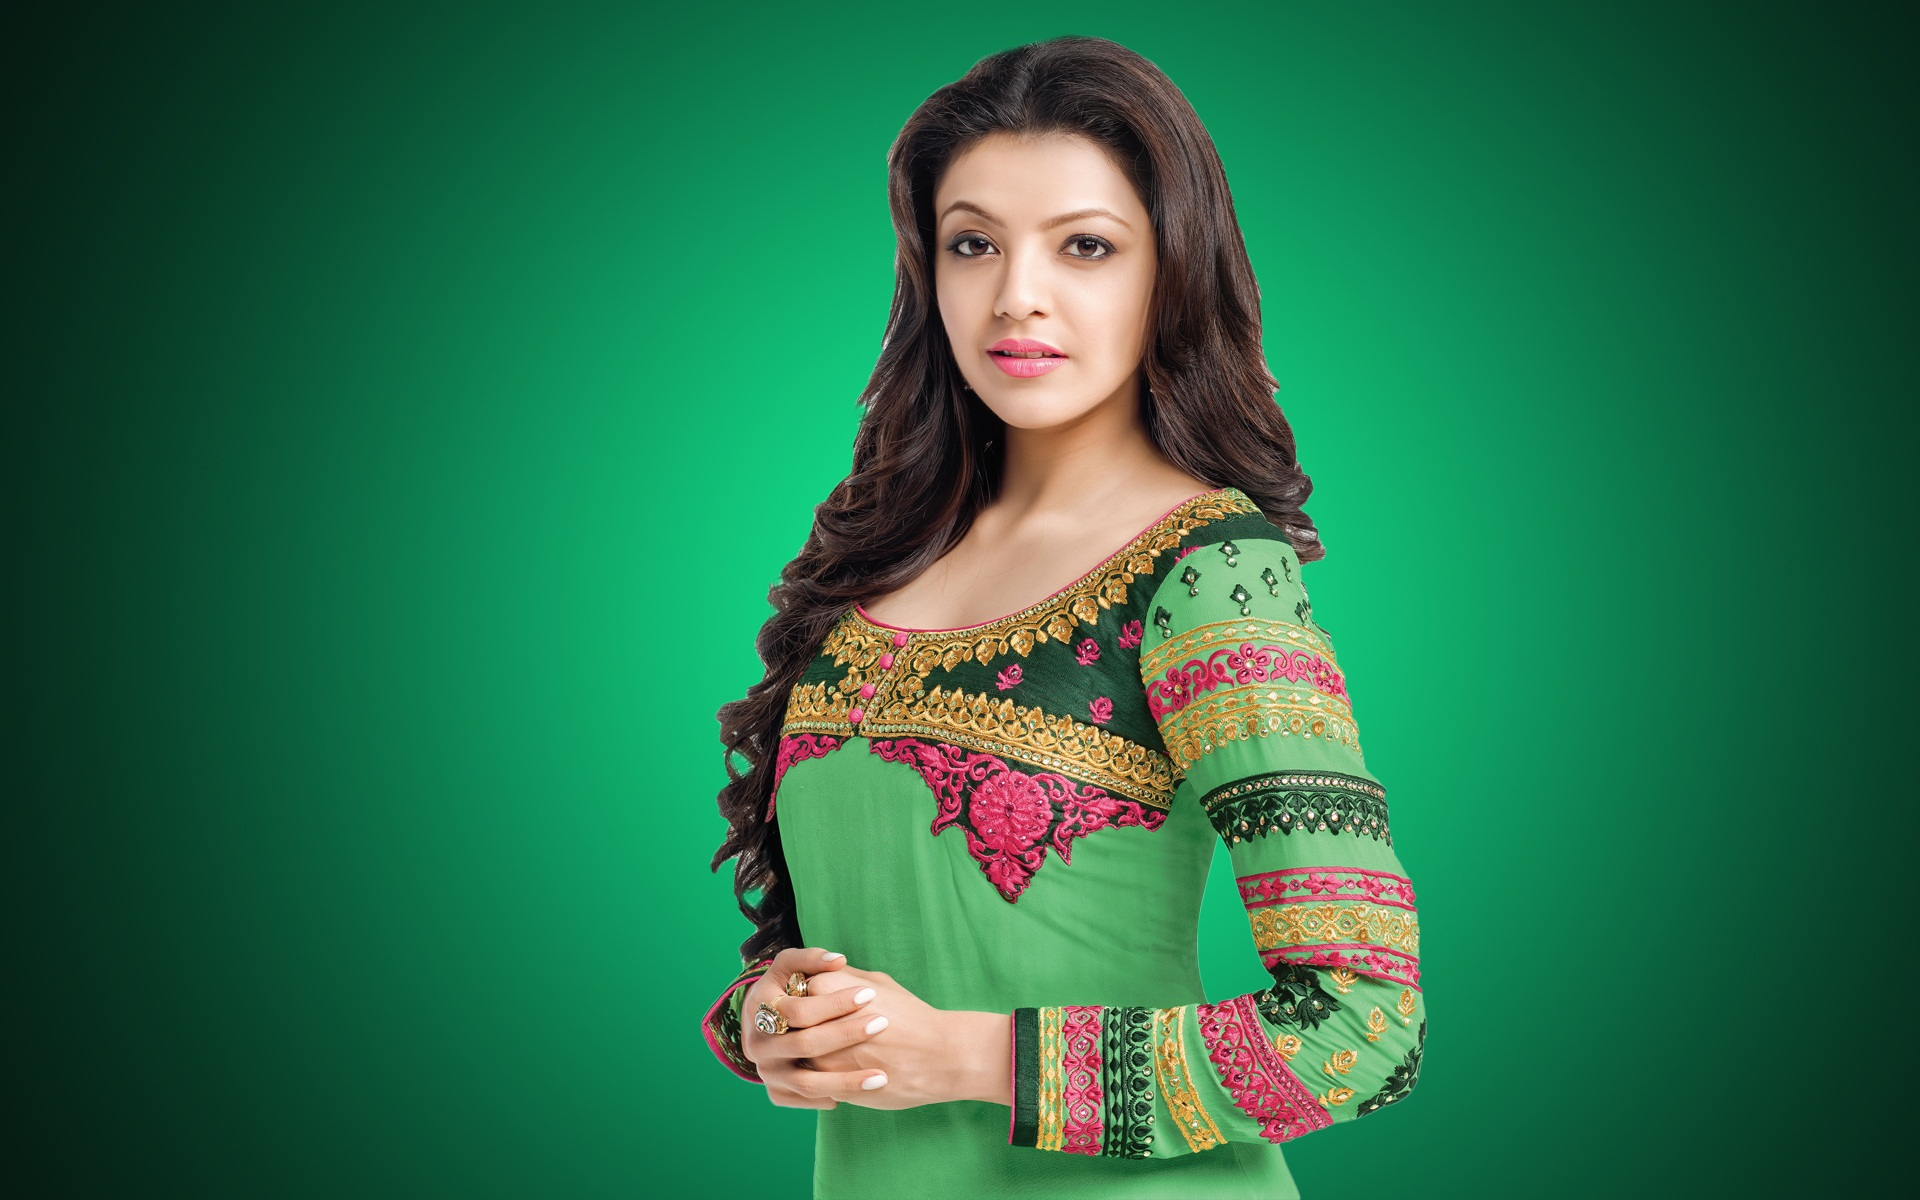 kajal-agarwal-hd-desktop-wallpapers